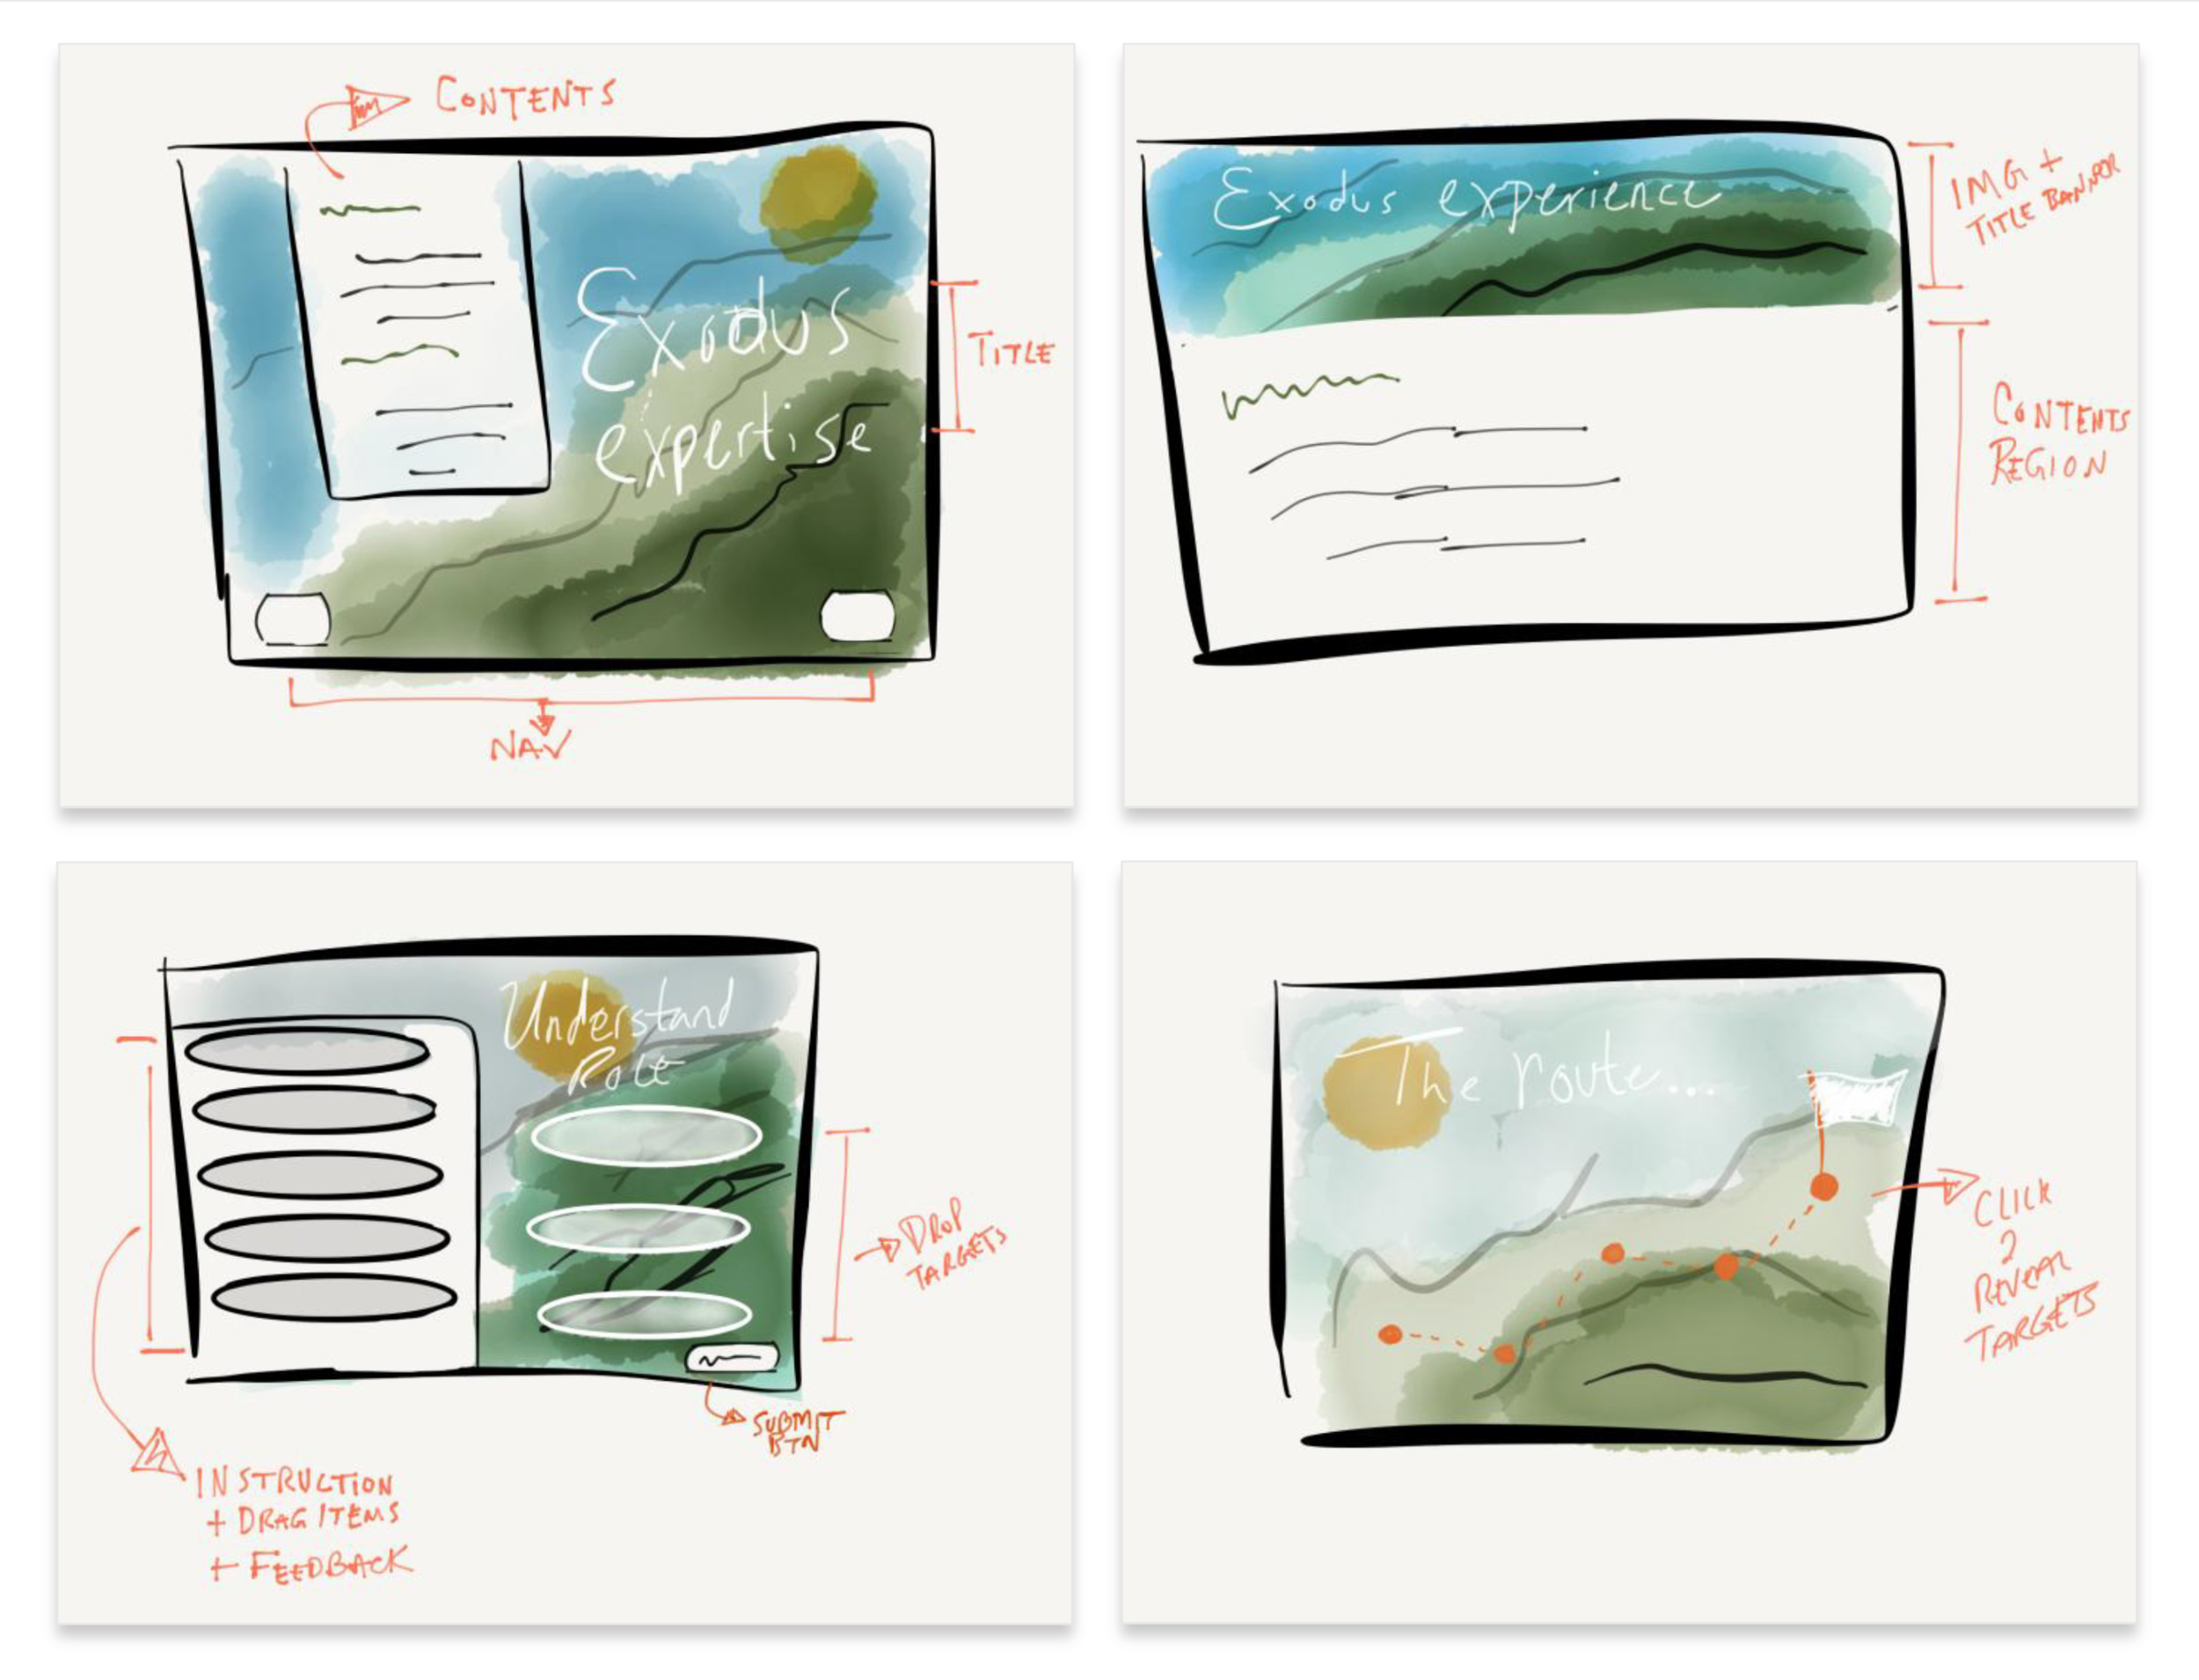 Initial sketch concepts for interpreting content and presenting to the client (created with app Paper).